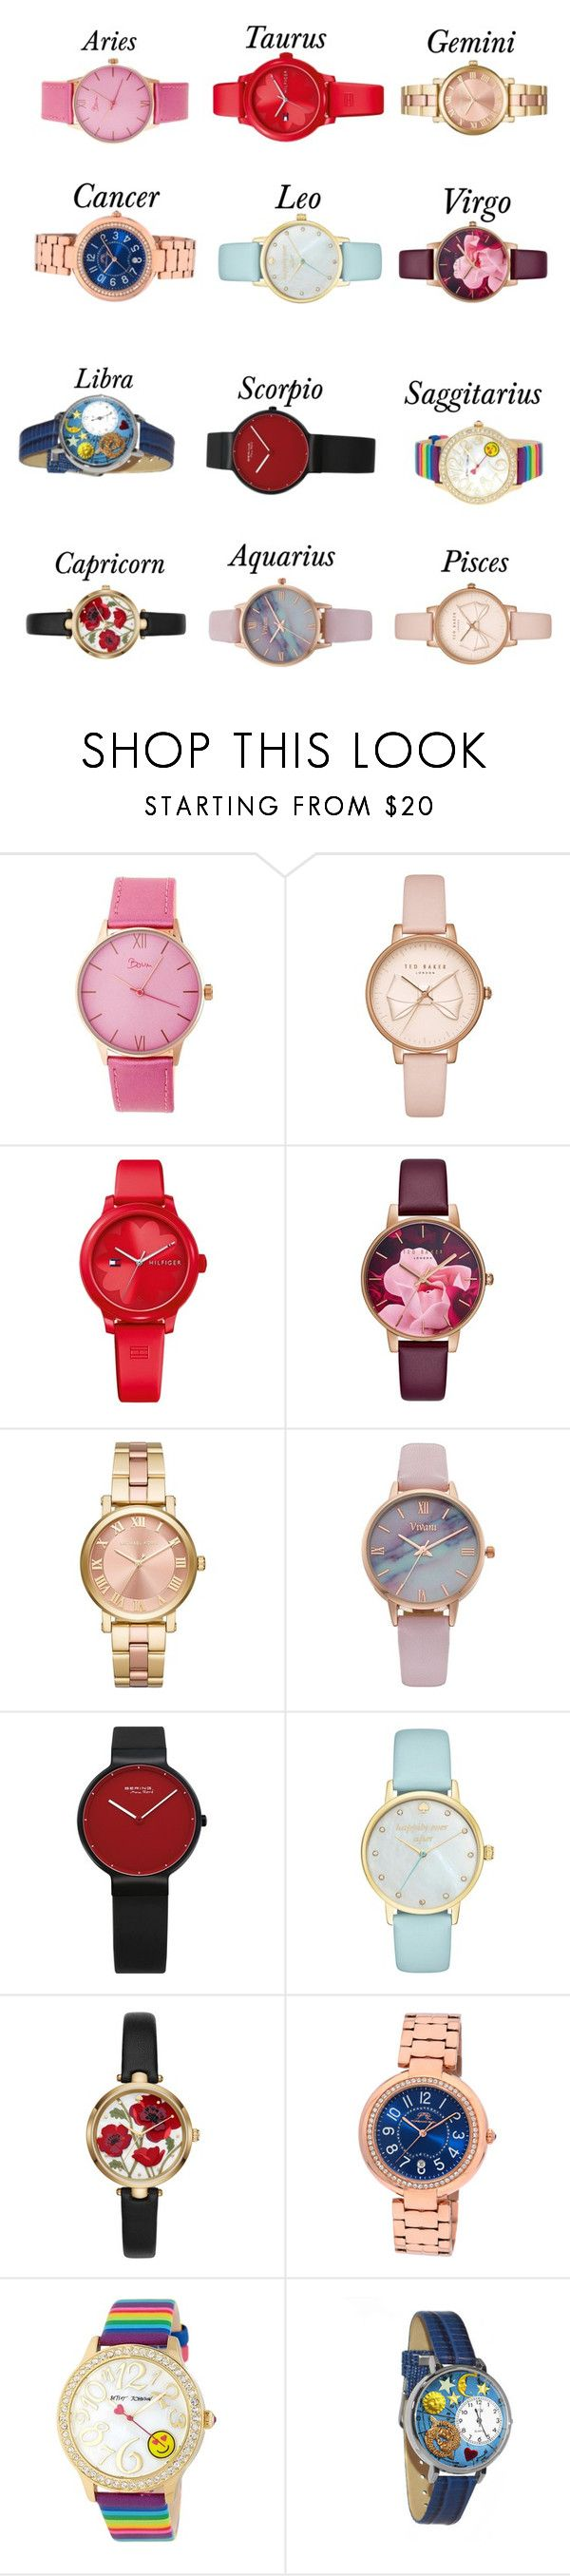 """Zodiac Sign + Watches"" by emilymalik043 ❤ liked on Polyvore featuring Boum, Ted Baker, Tommy Hilfiger, MICHAEL Michael Kors, Vivani, Kate Spade, Porsamo Bleu, Betsey Johnson and Whimsical Watches"